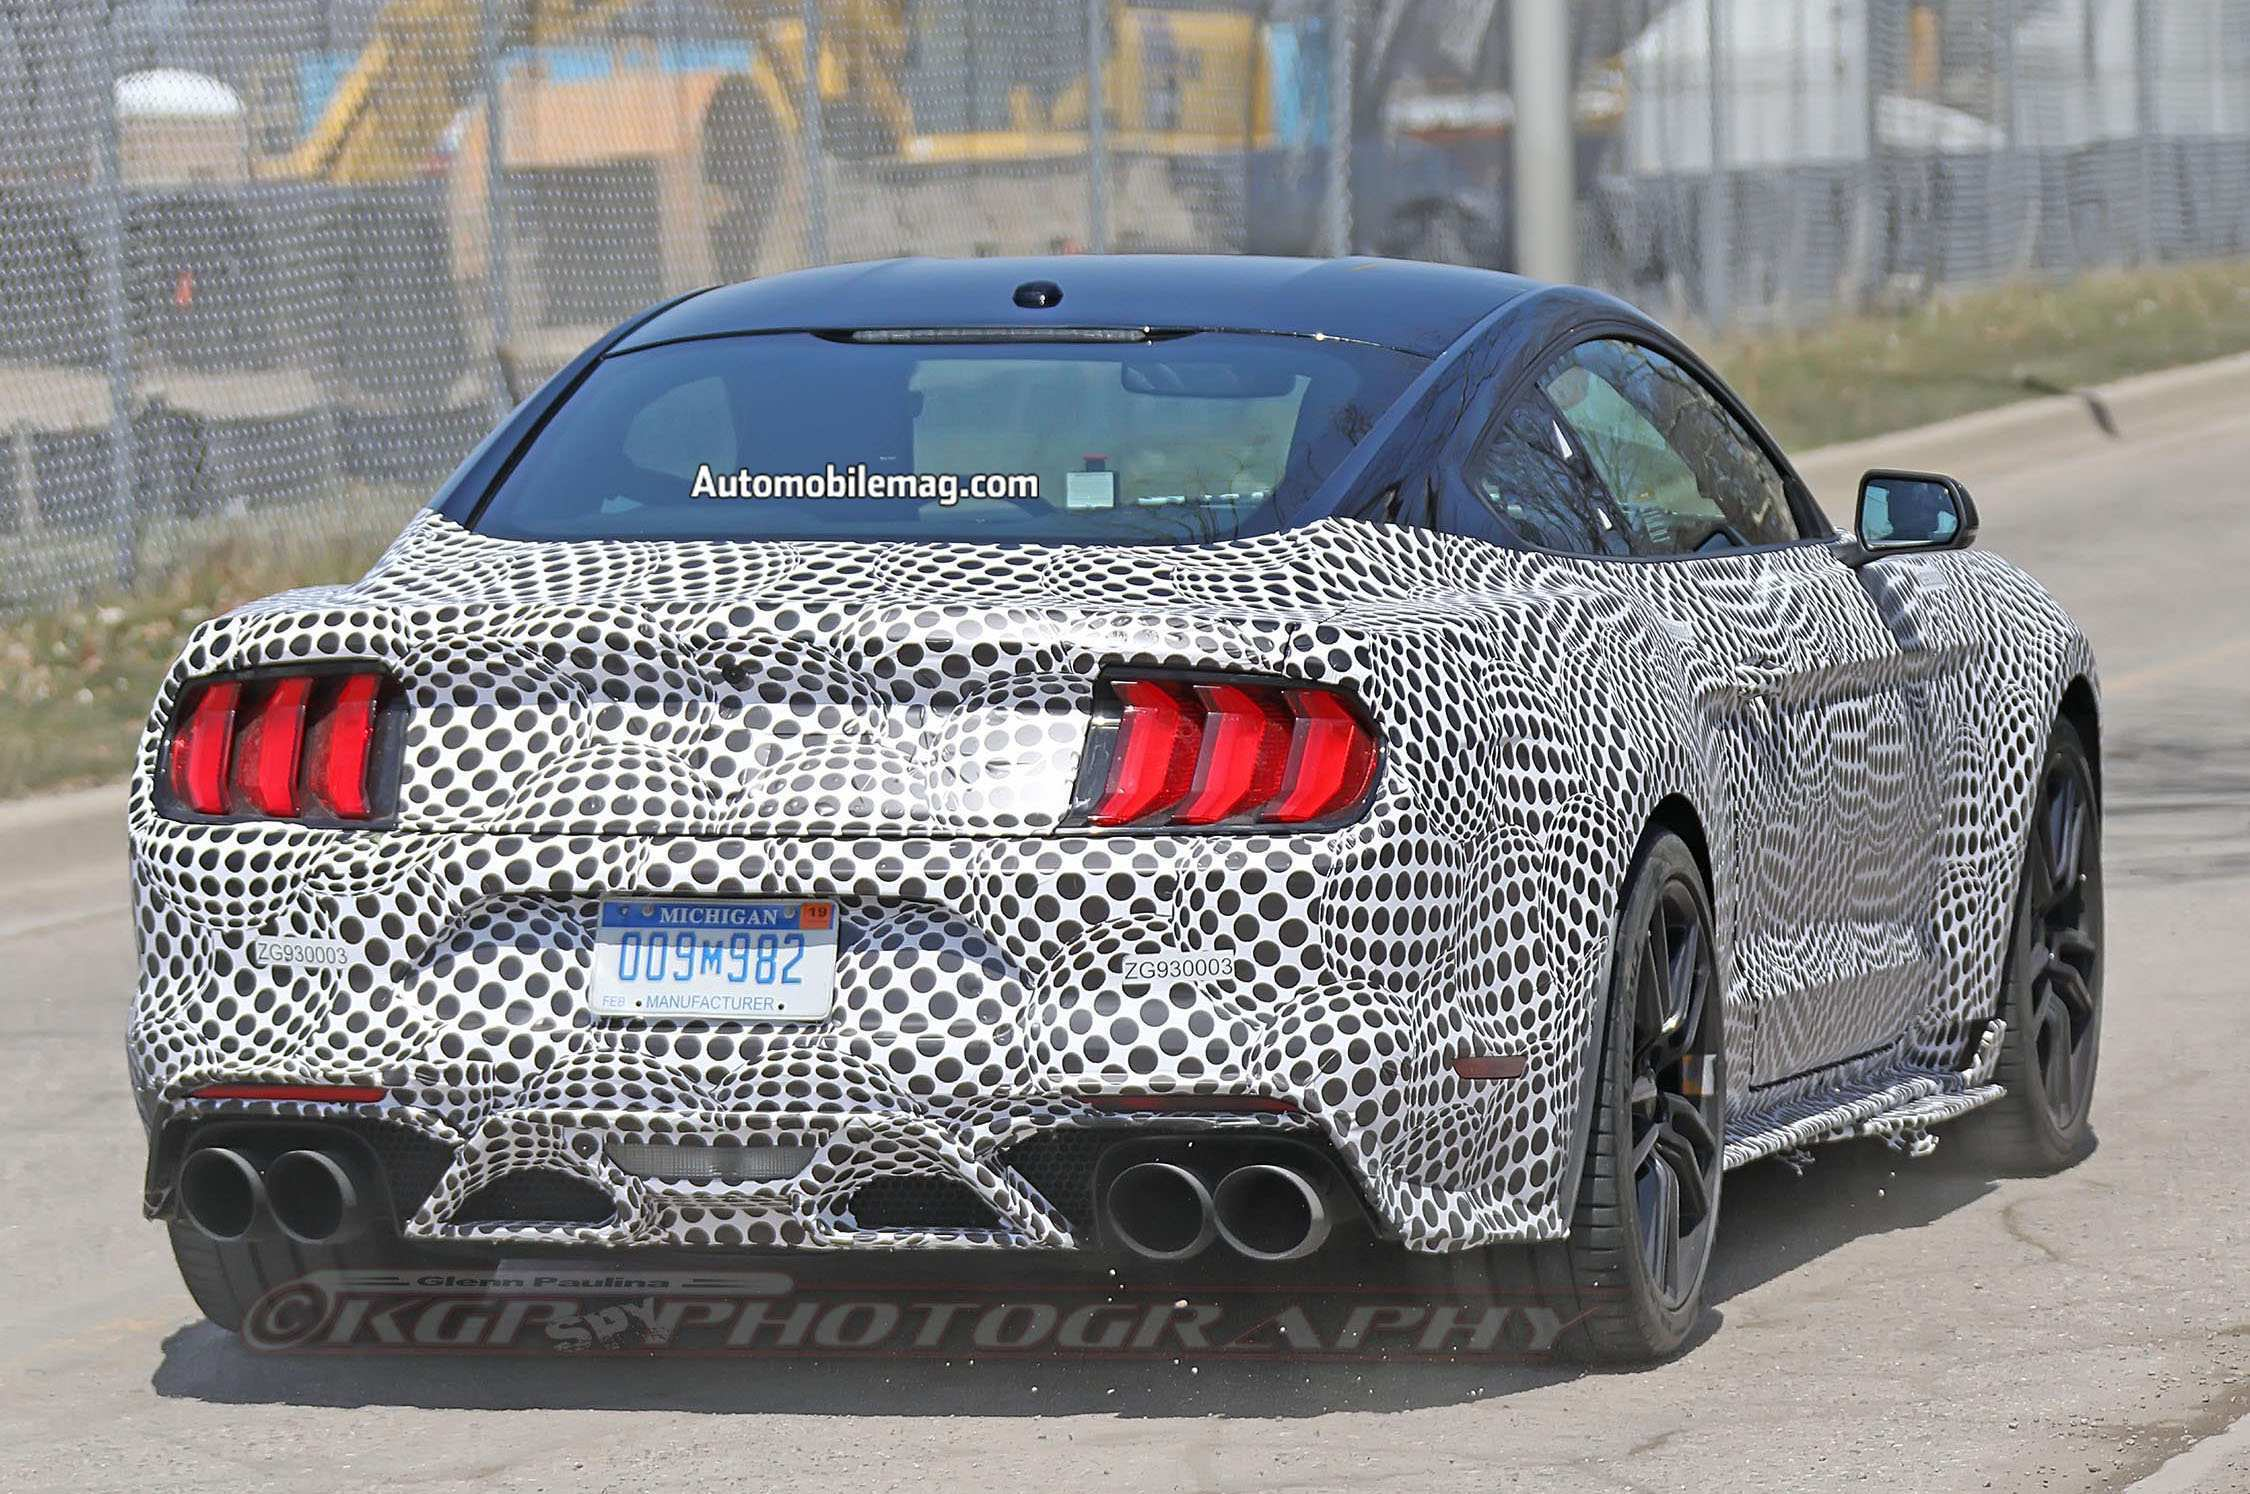 45 All New 2020 Ford Mustang Gt Ratings for 2020 Ford Mustang Gt